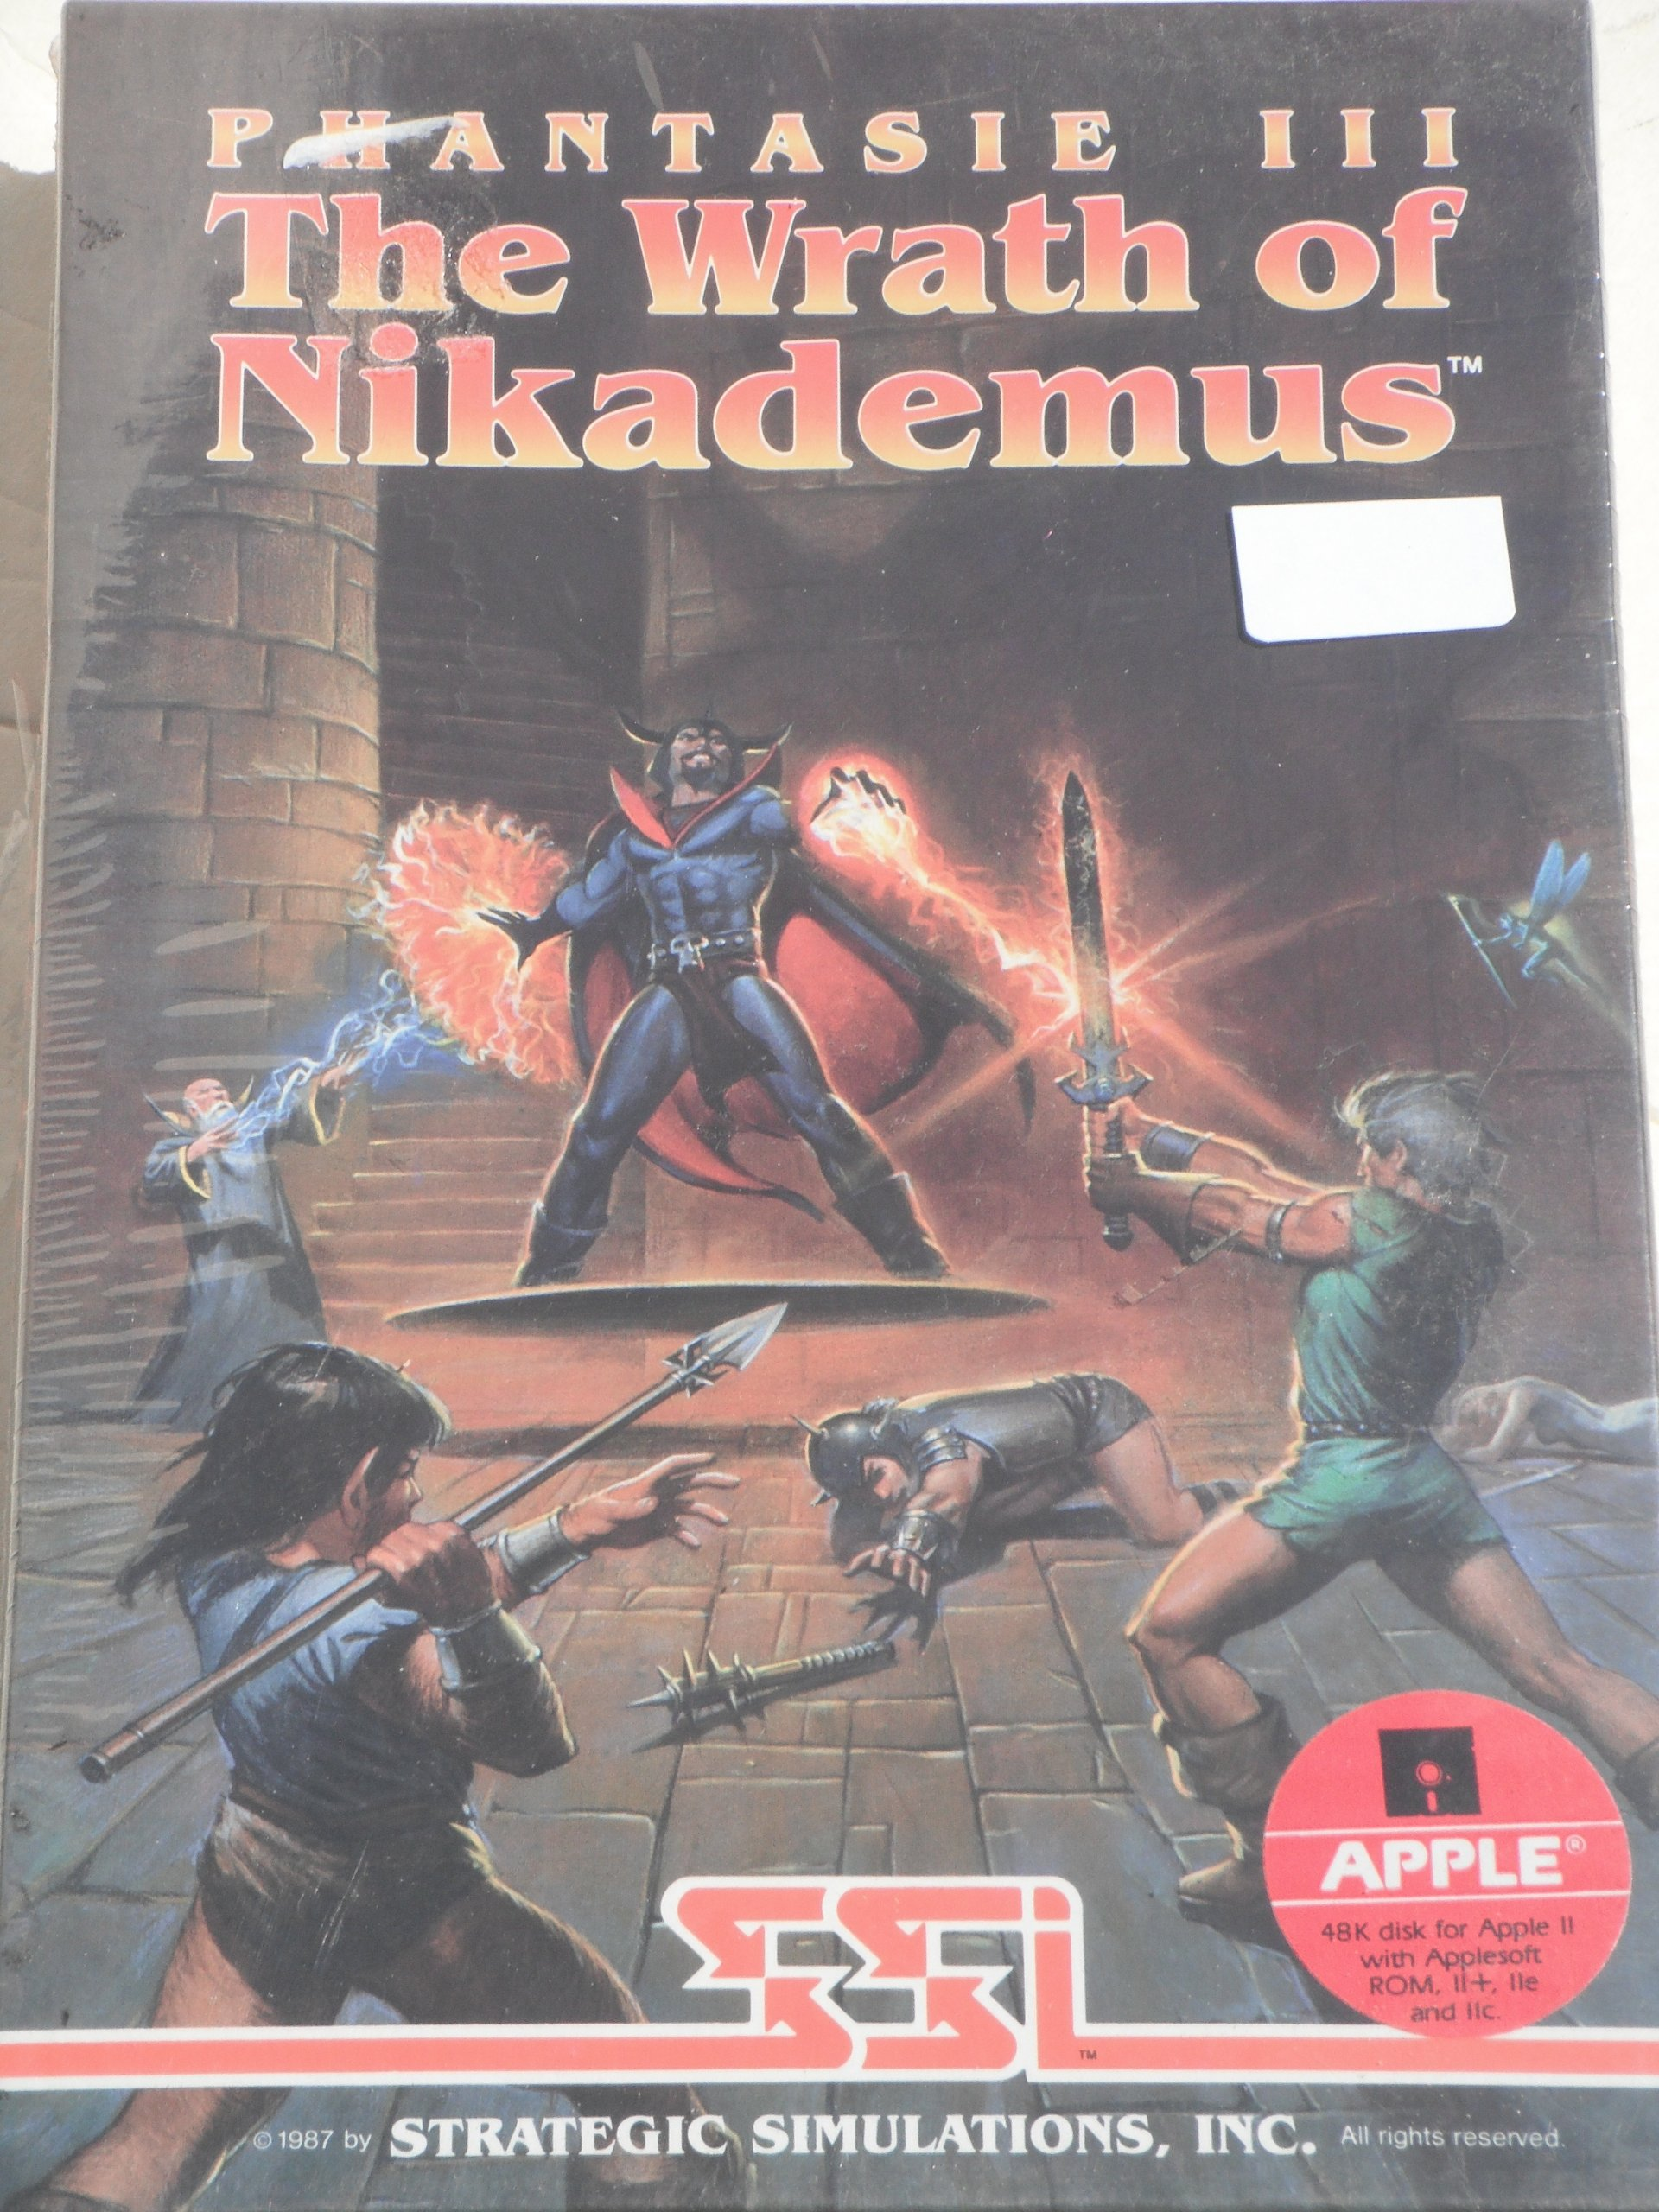 Amazon com: PHANTASIE III (1987): The Wrath of Nikademus (APPLE II